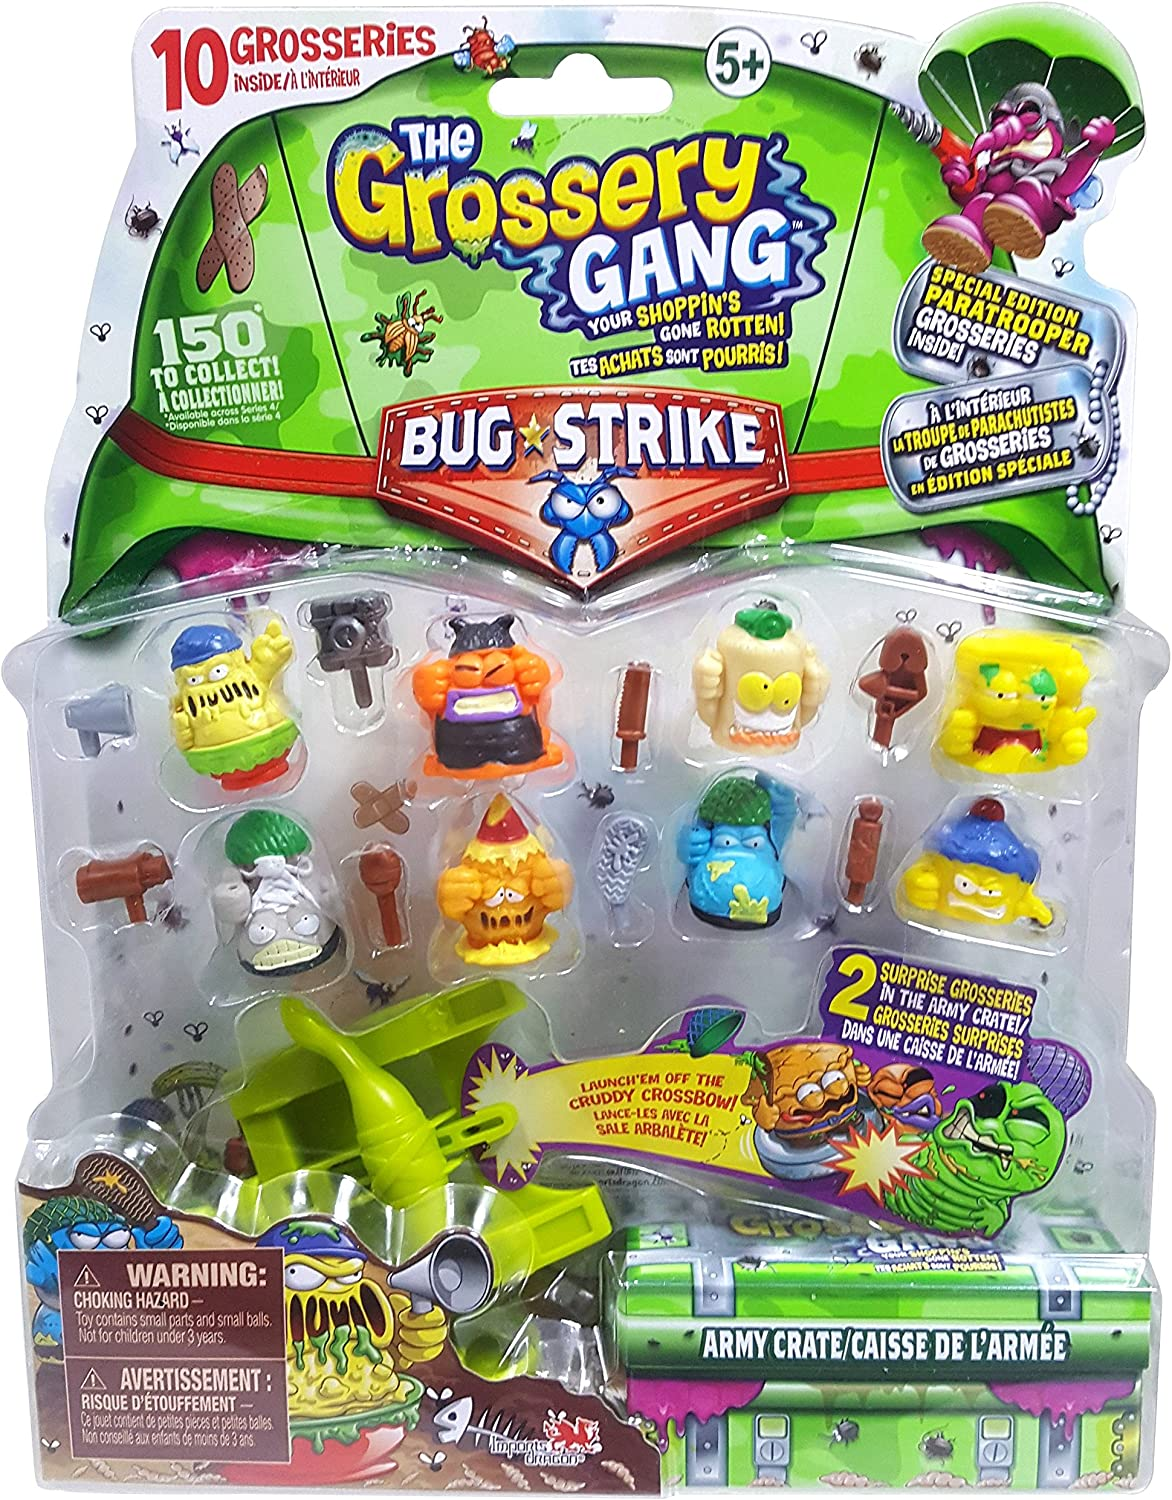 The Grossery Gang ID69100 S4 Bug Strike Large Pack